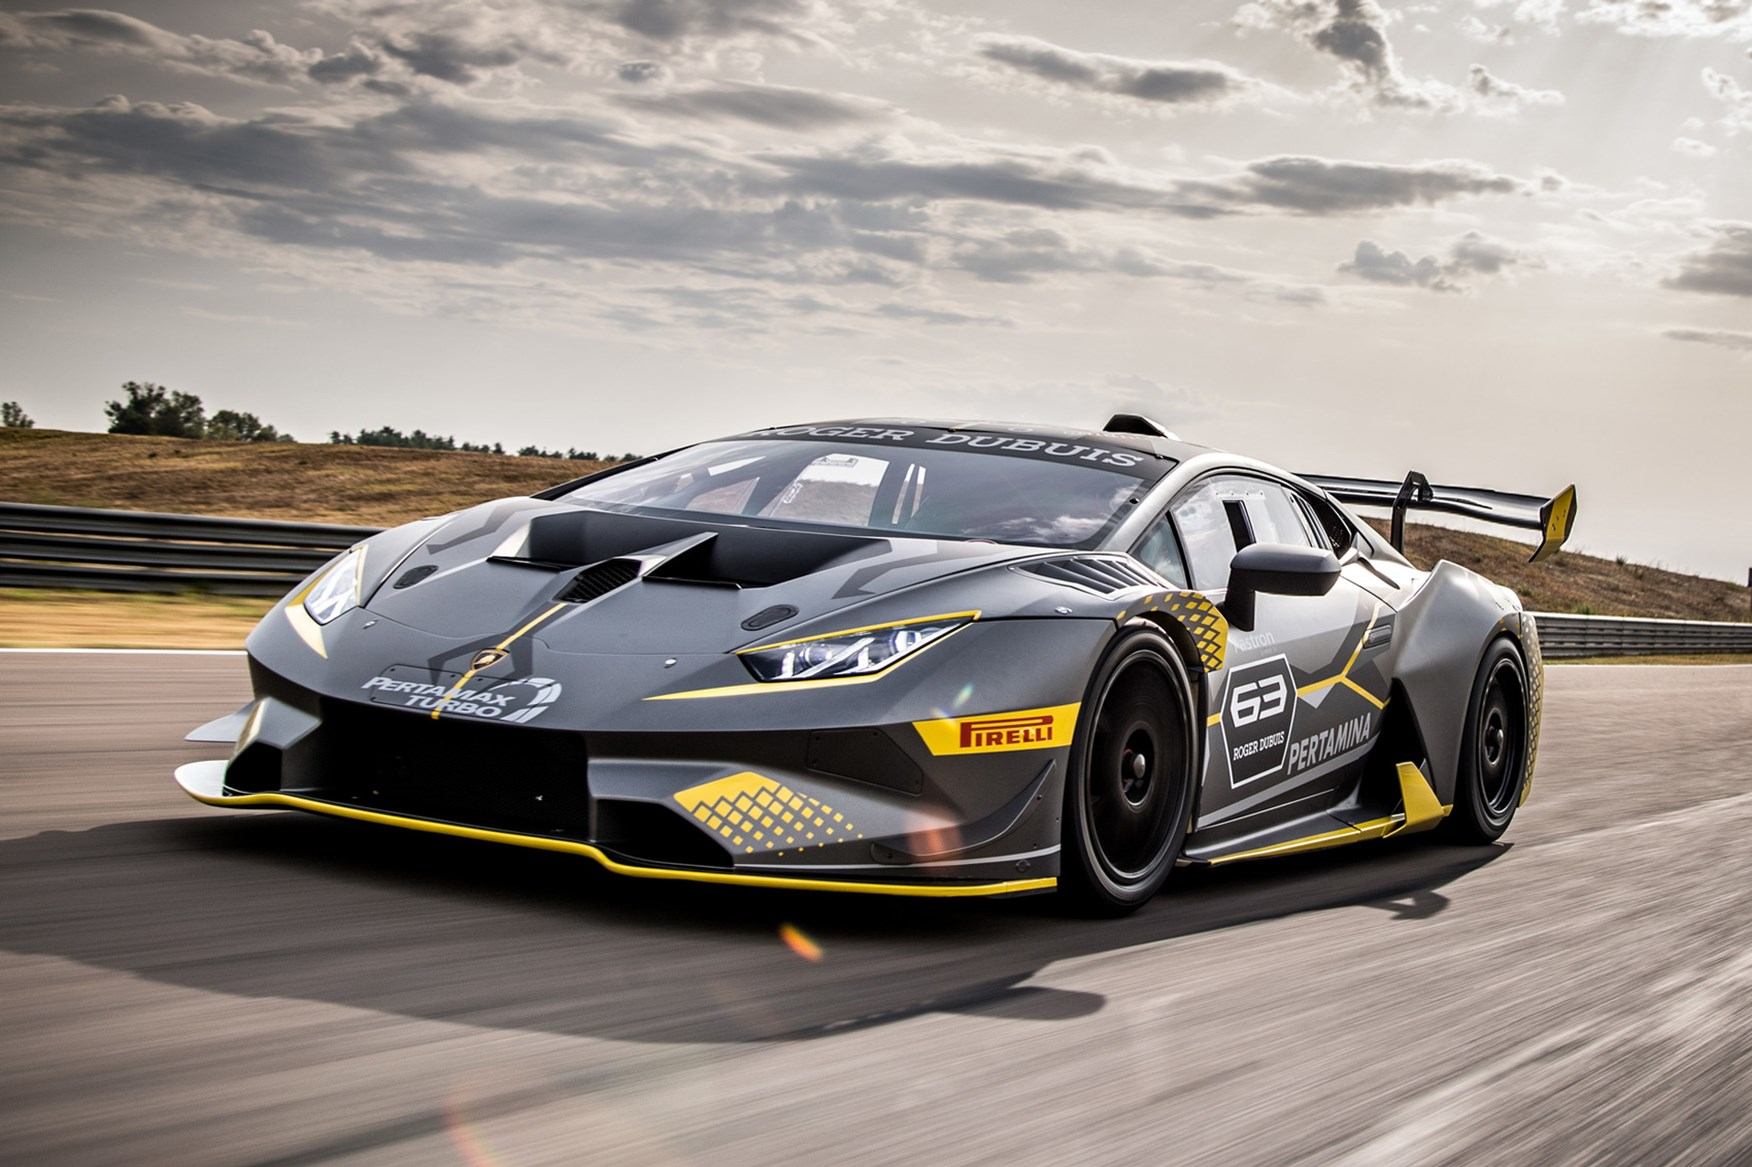 Lamborghini Huracan Super Trofeo Evo Here To Reap Your Soul By Car Magazine